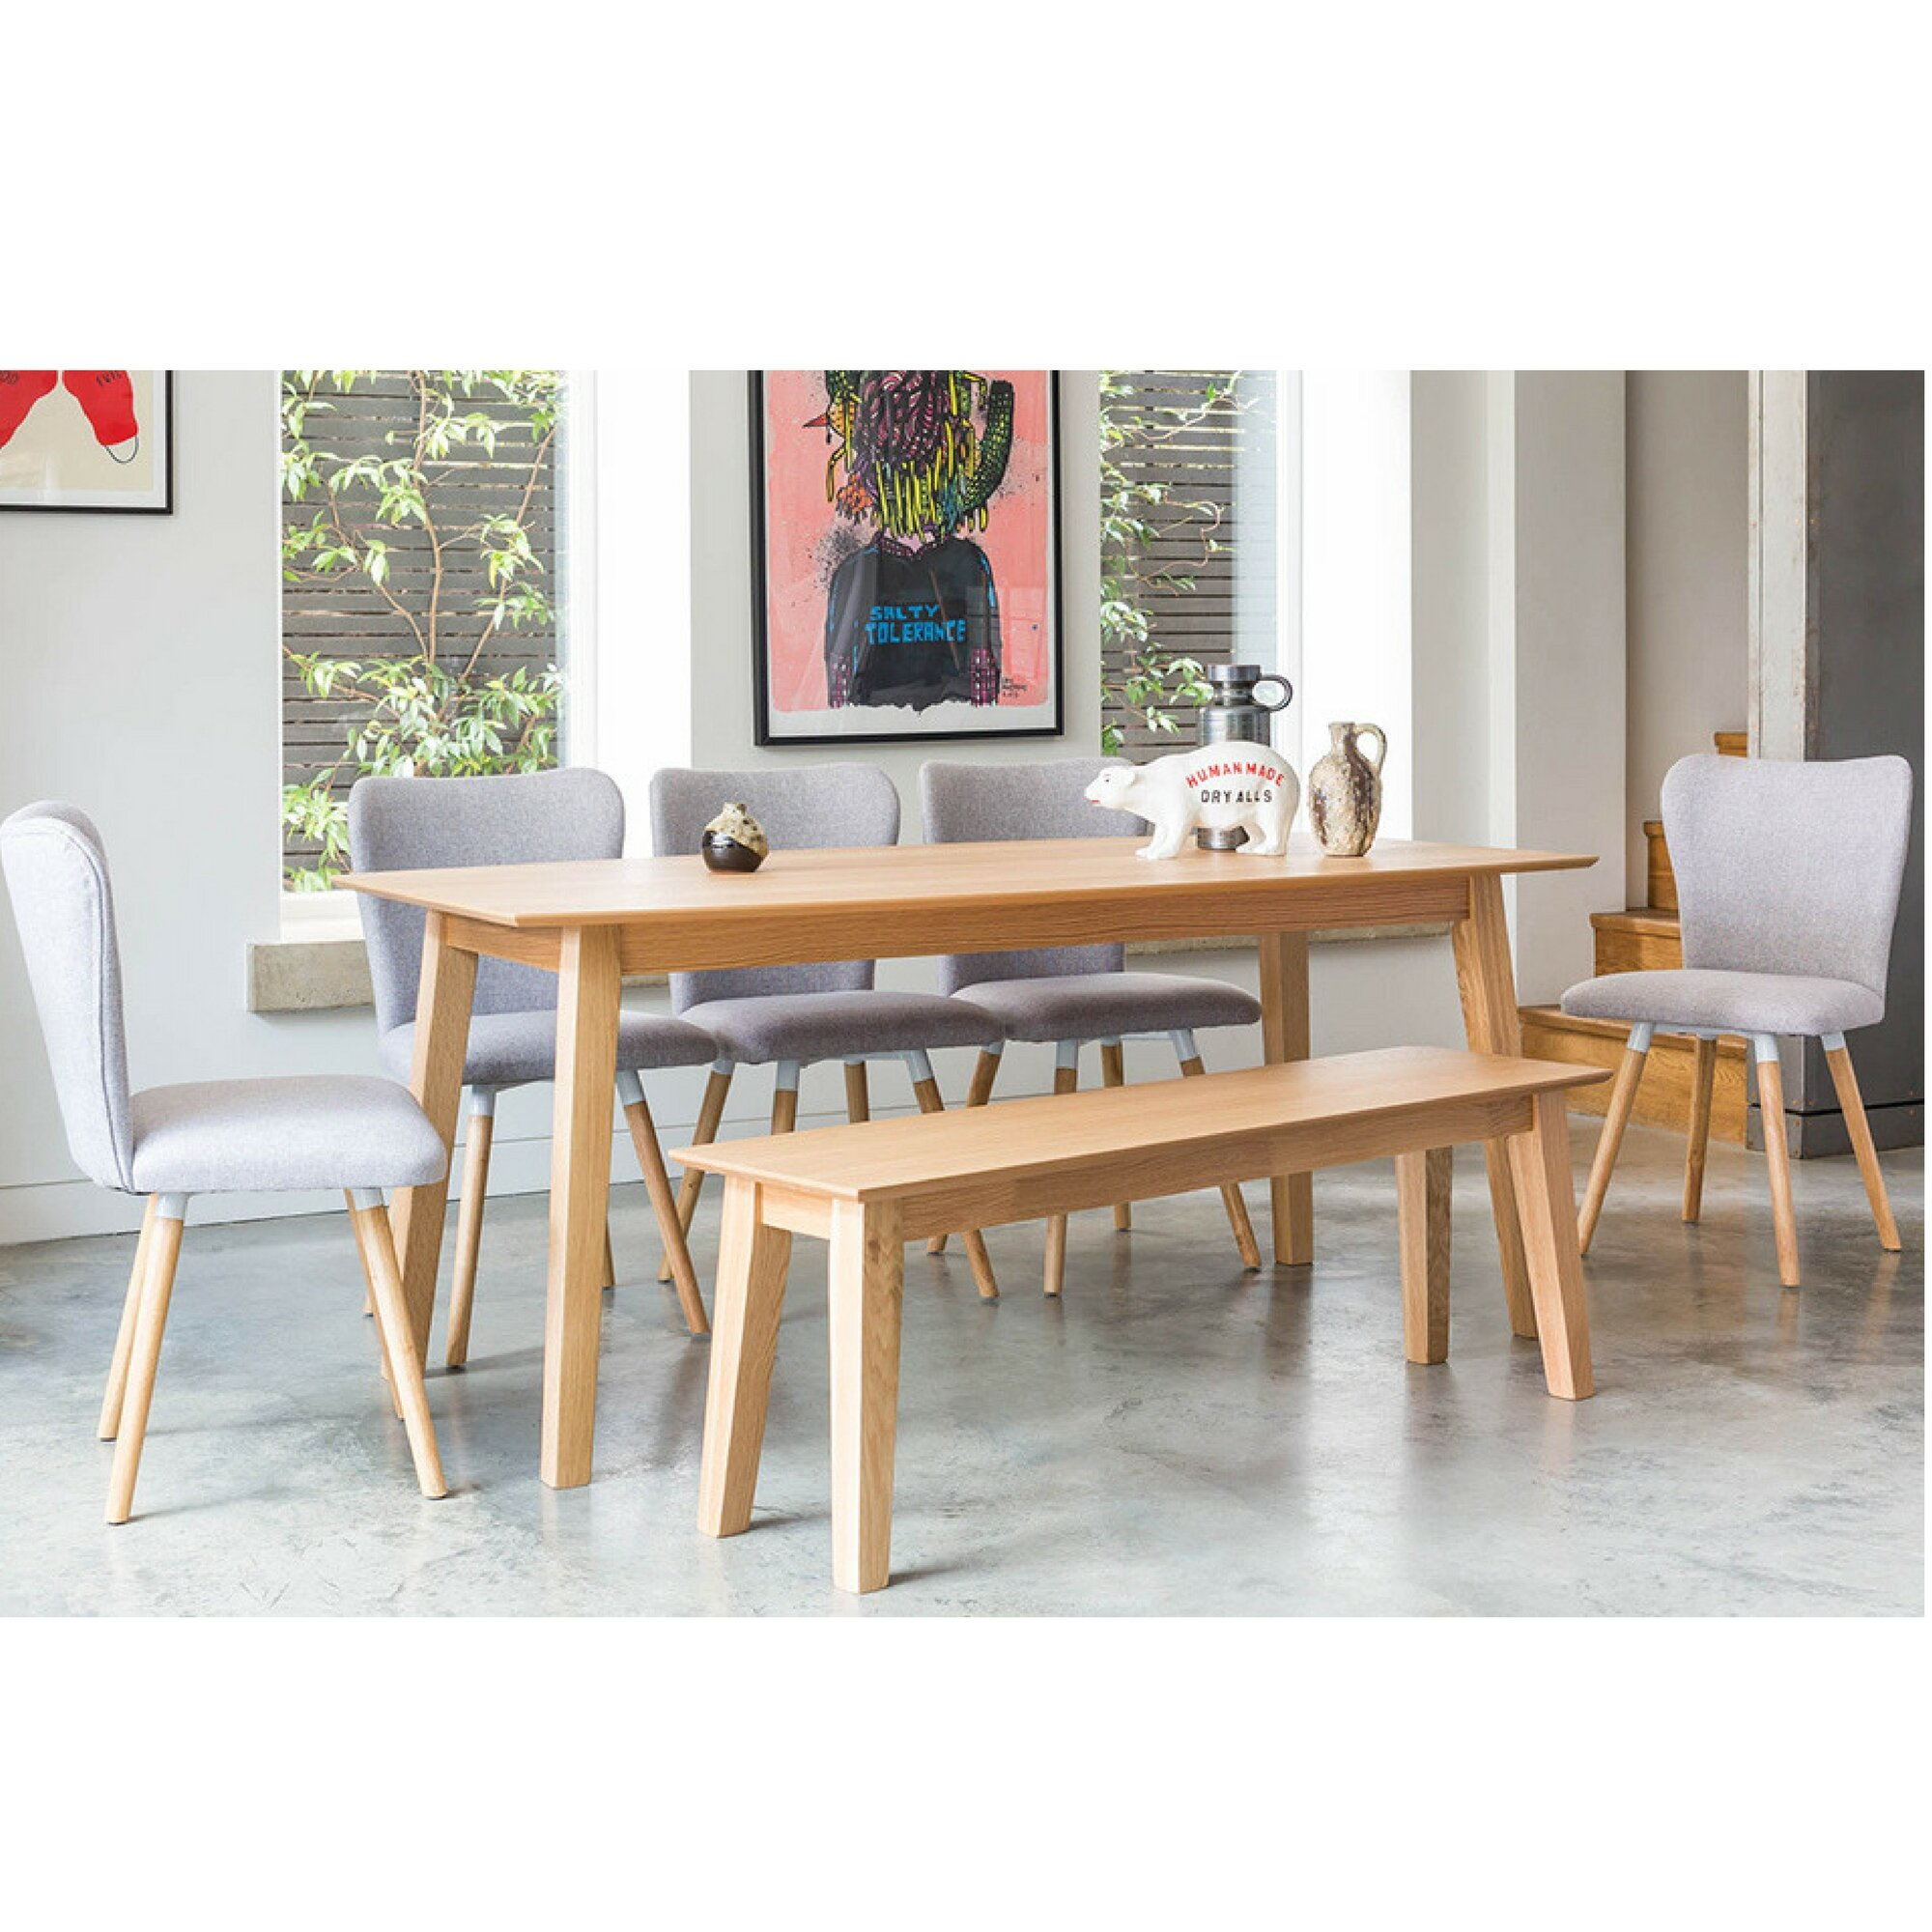 Norden Home Fairway Dining Set With 5 Chairs And 1 Bench Wayfair Co Uk